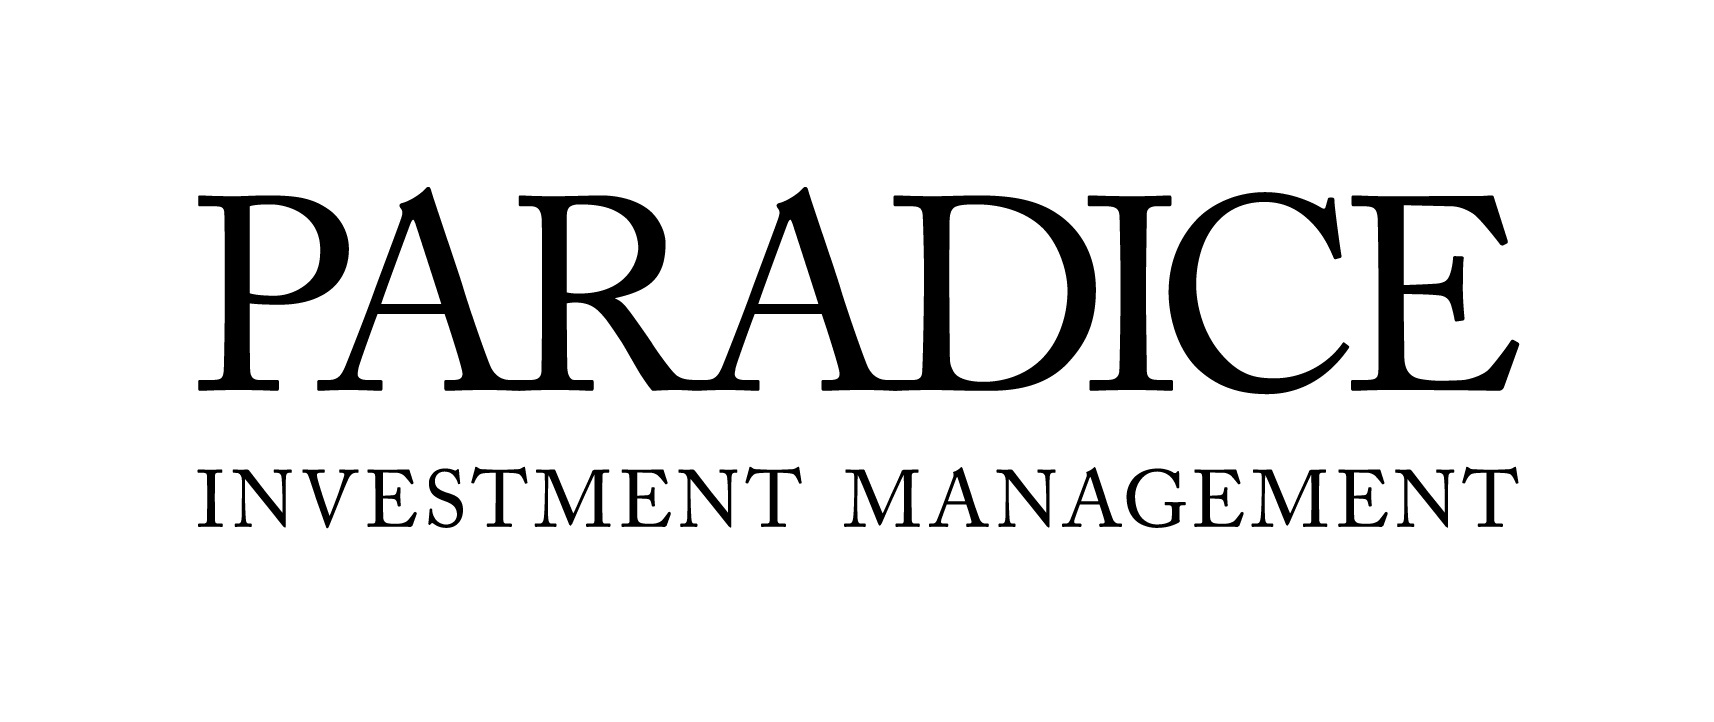 Paradice investment management pty limited kolibrie investments for kids